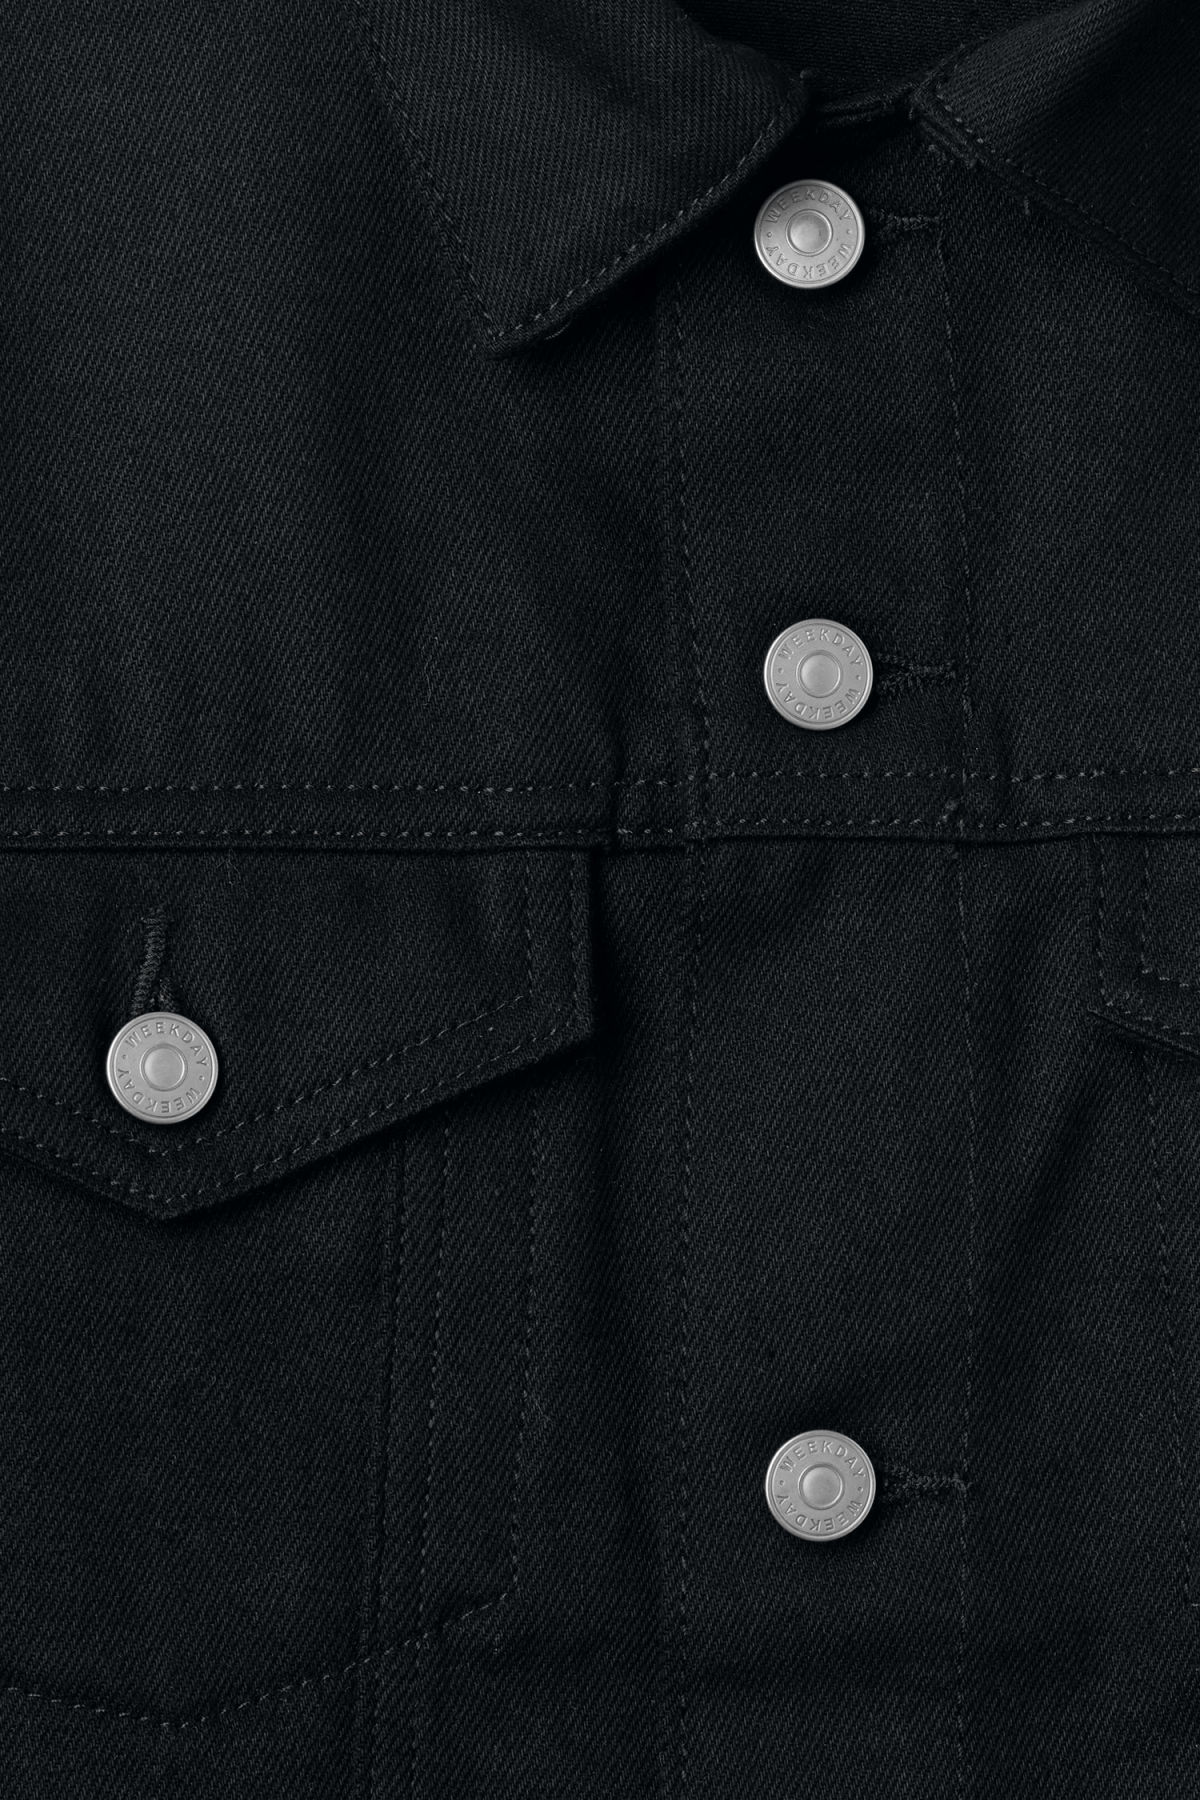 Detailed image of Weekday single unwashed black jacket in black